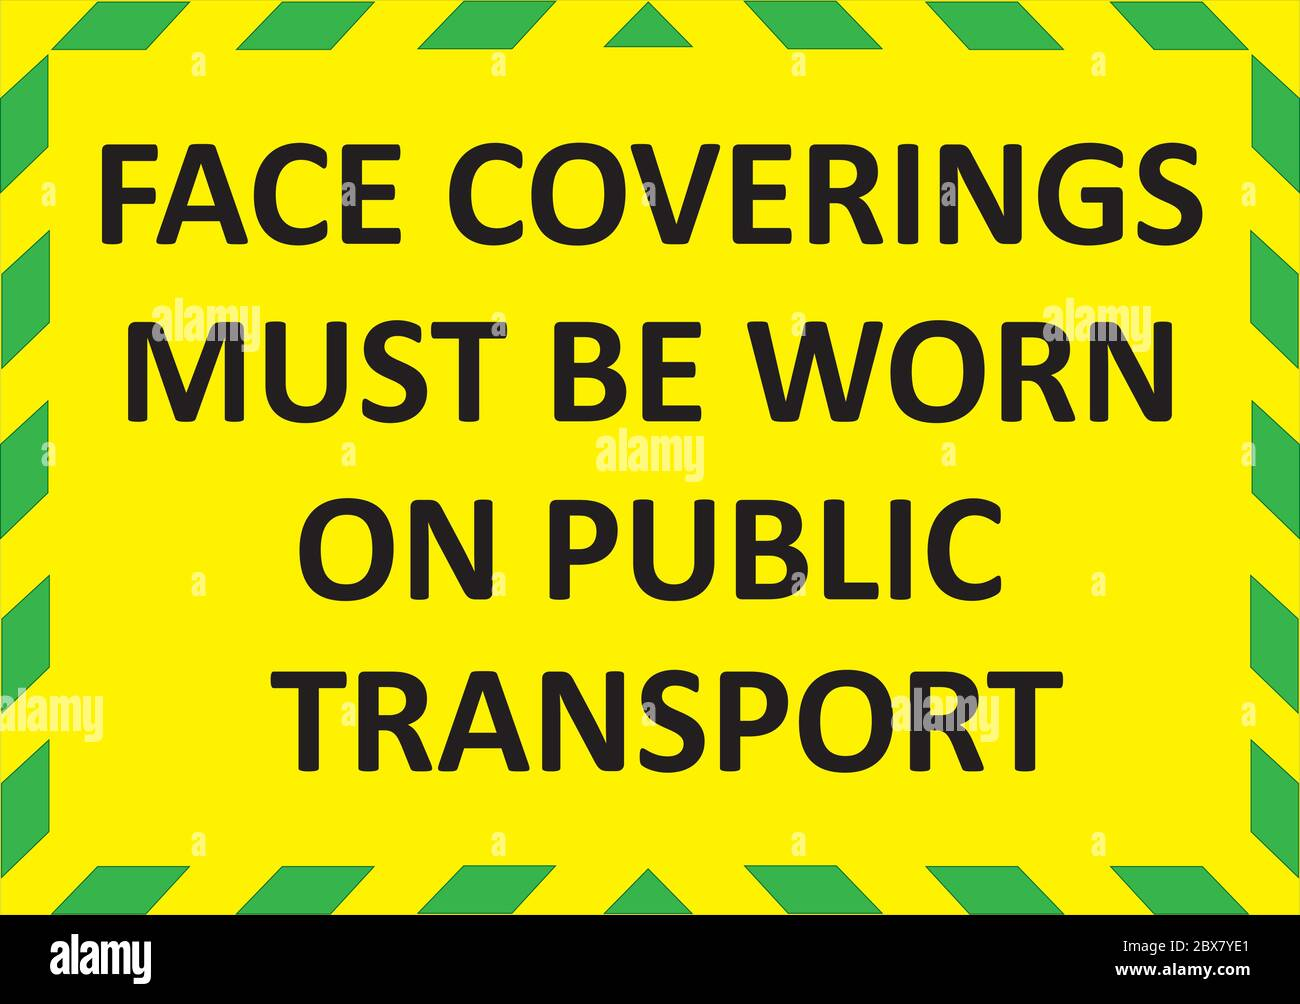 FACE COVERINGS MUST BE WORN ON PUBLIC TRANSPORT warning sign. Green quarantine sign that help to battle against Covid-19 in the United Kingdom. Vector Stock Vector